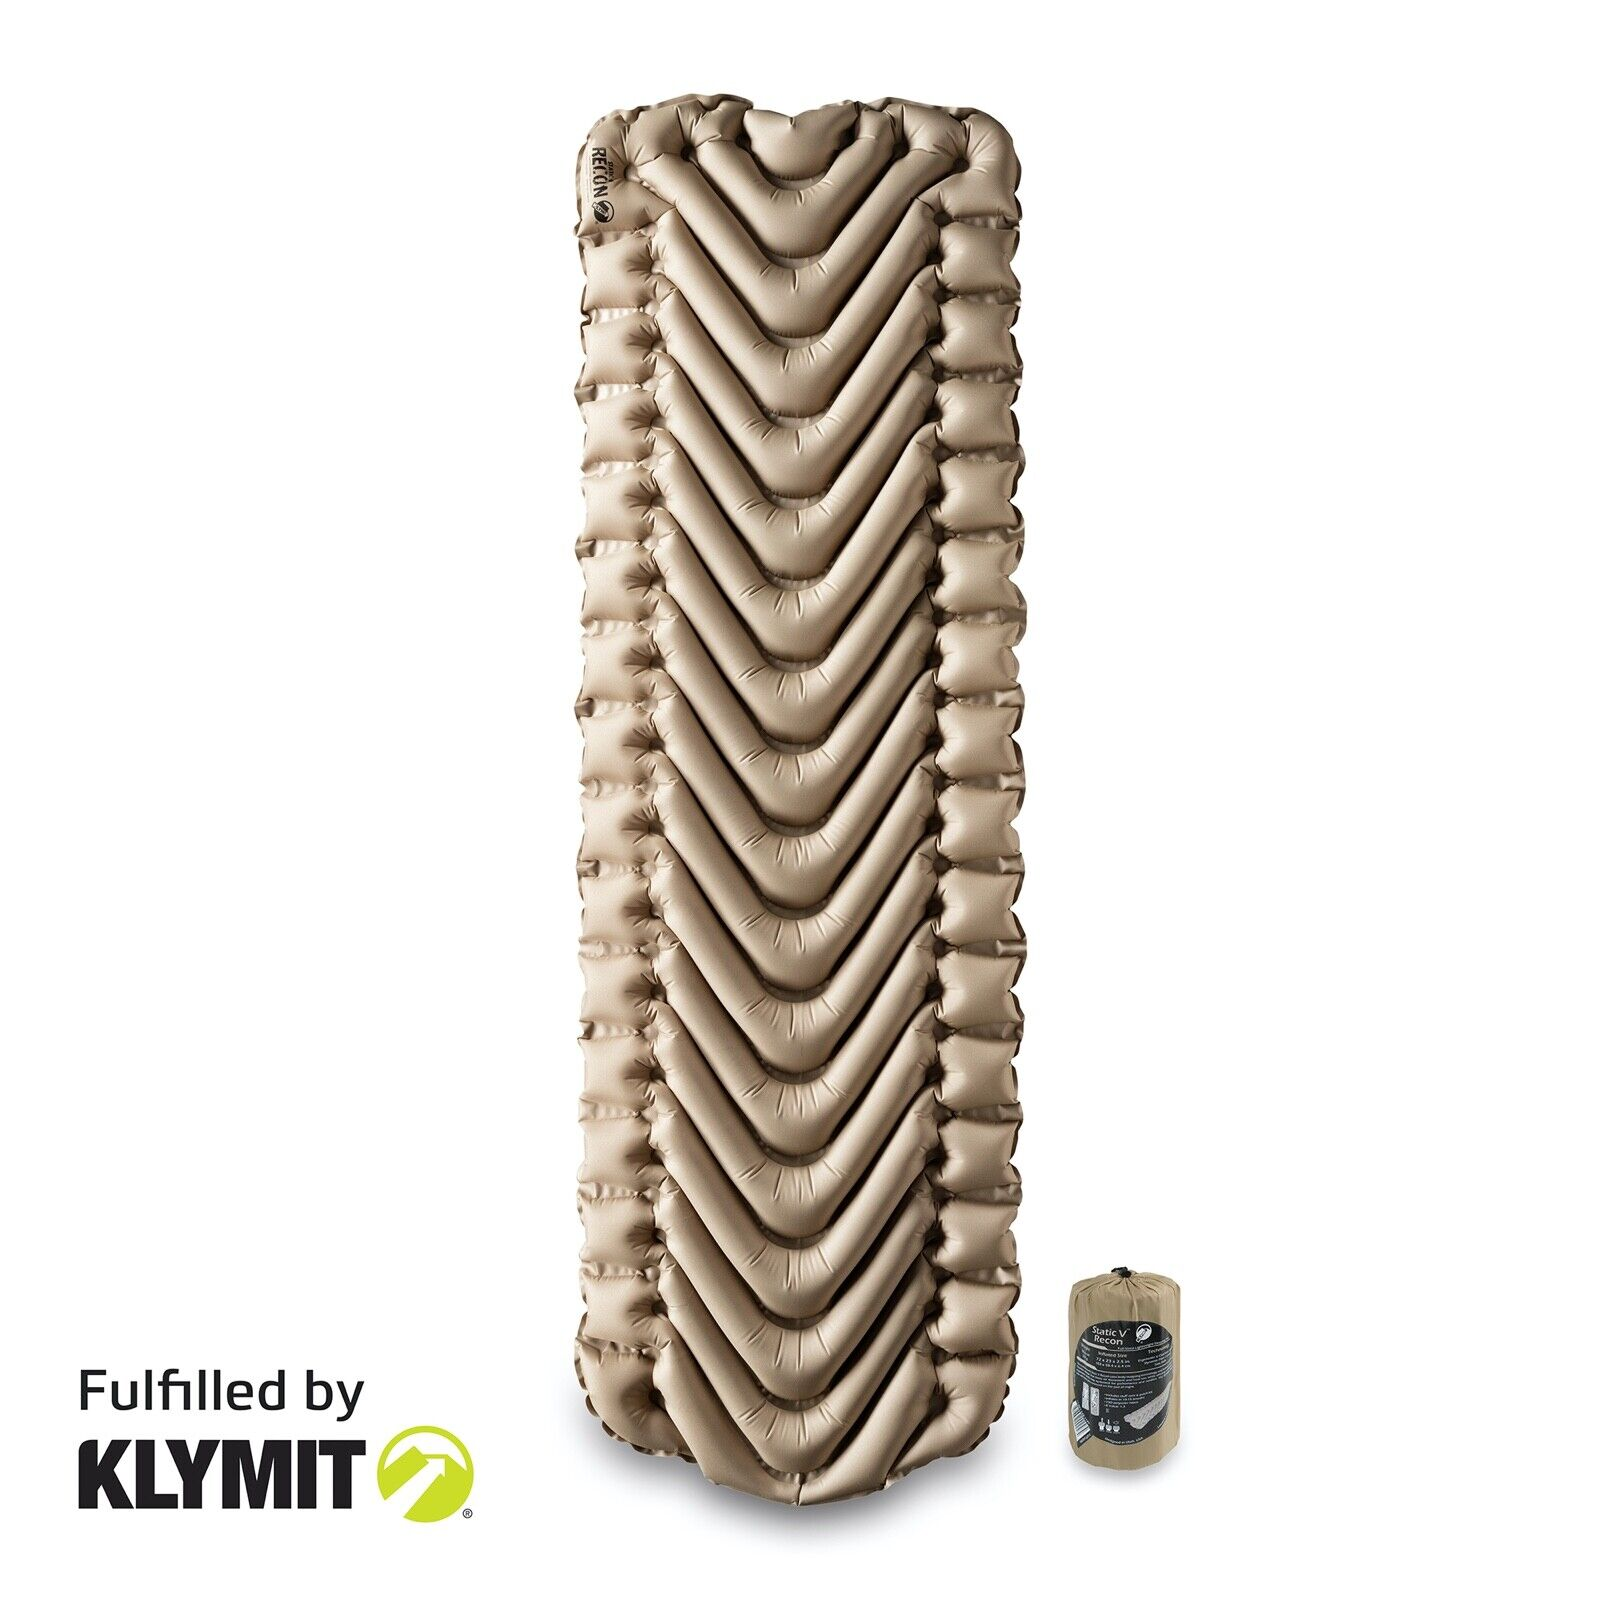 Klymit Static V Recon Lightweight Sleeping Camping Pad - Fac